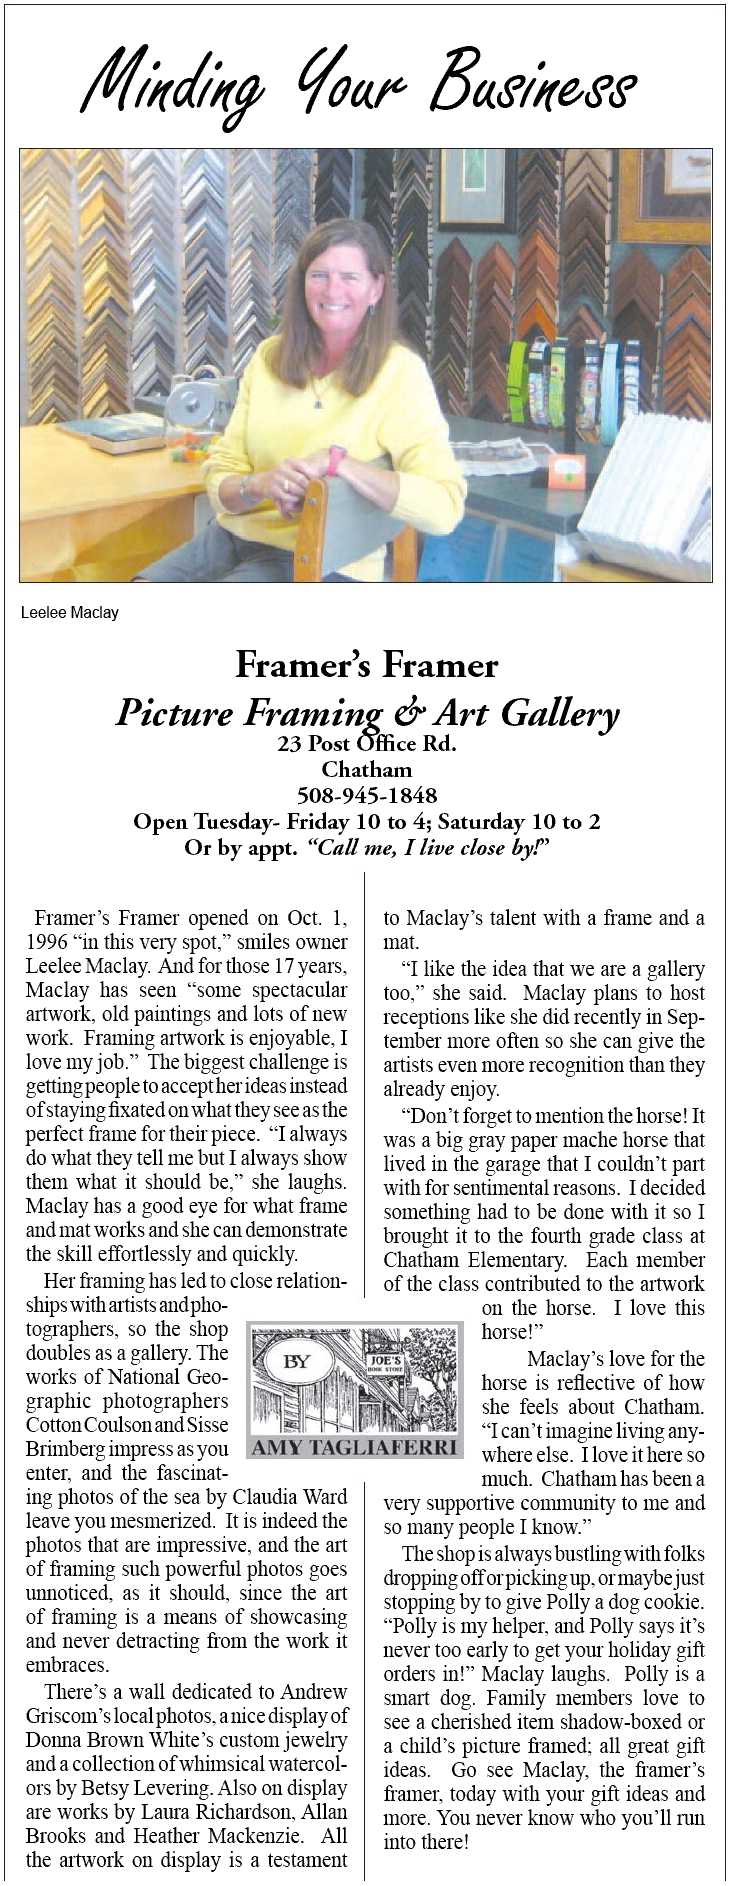 Framer's Framer article